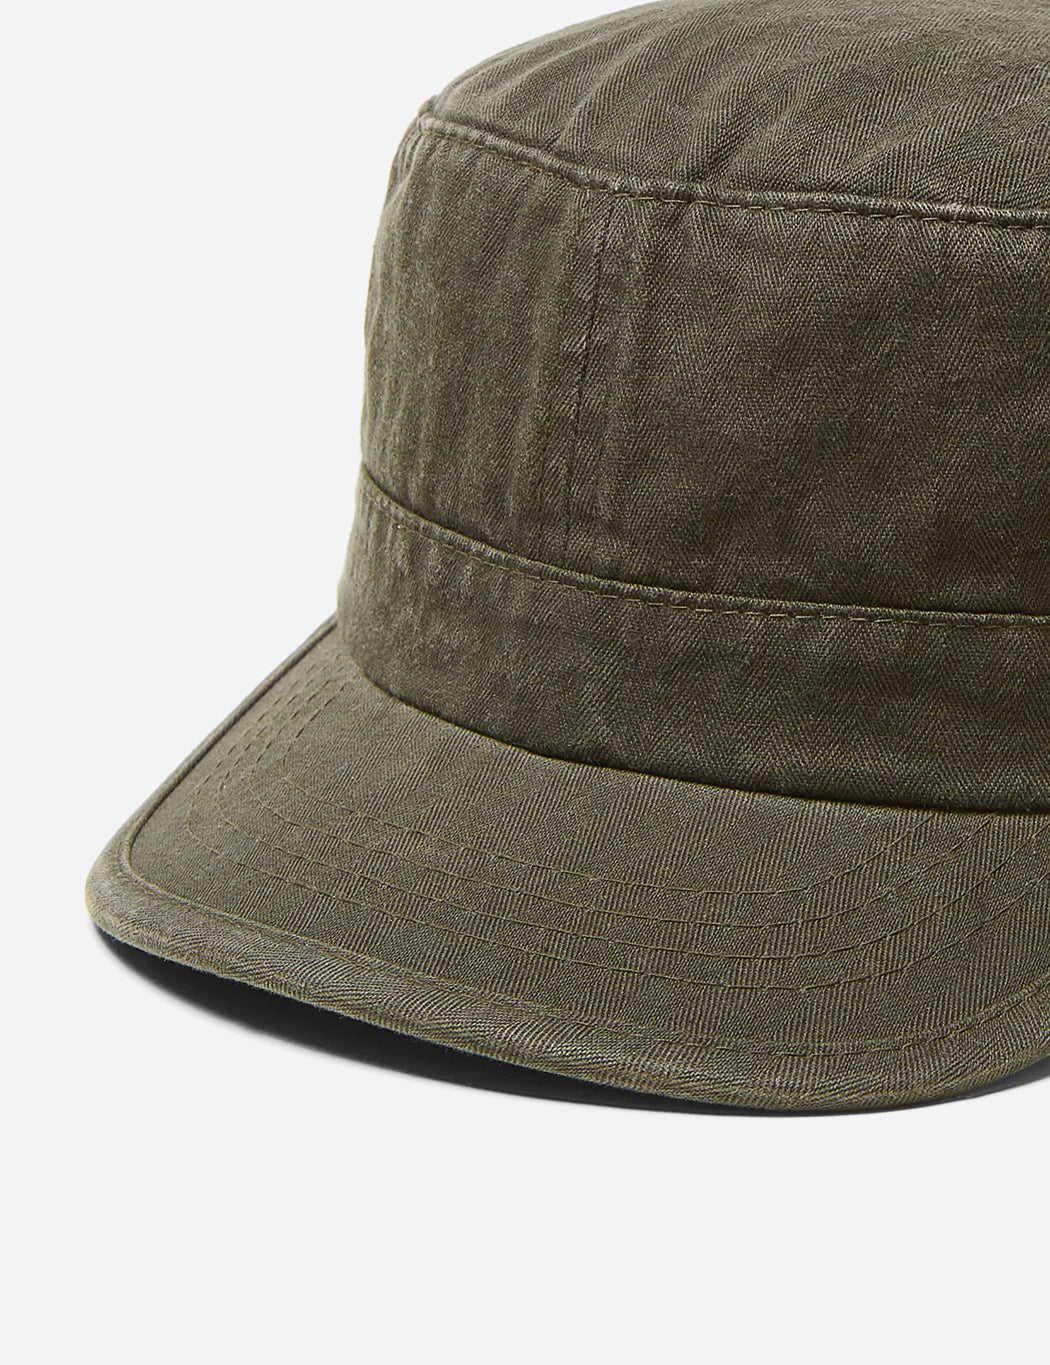 93395c87 Stetson Army Cap (Cotton) - Washed Olive | URBAN EXCESS.